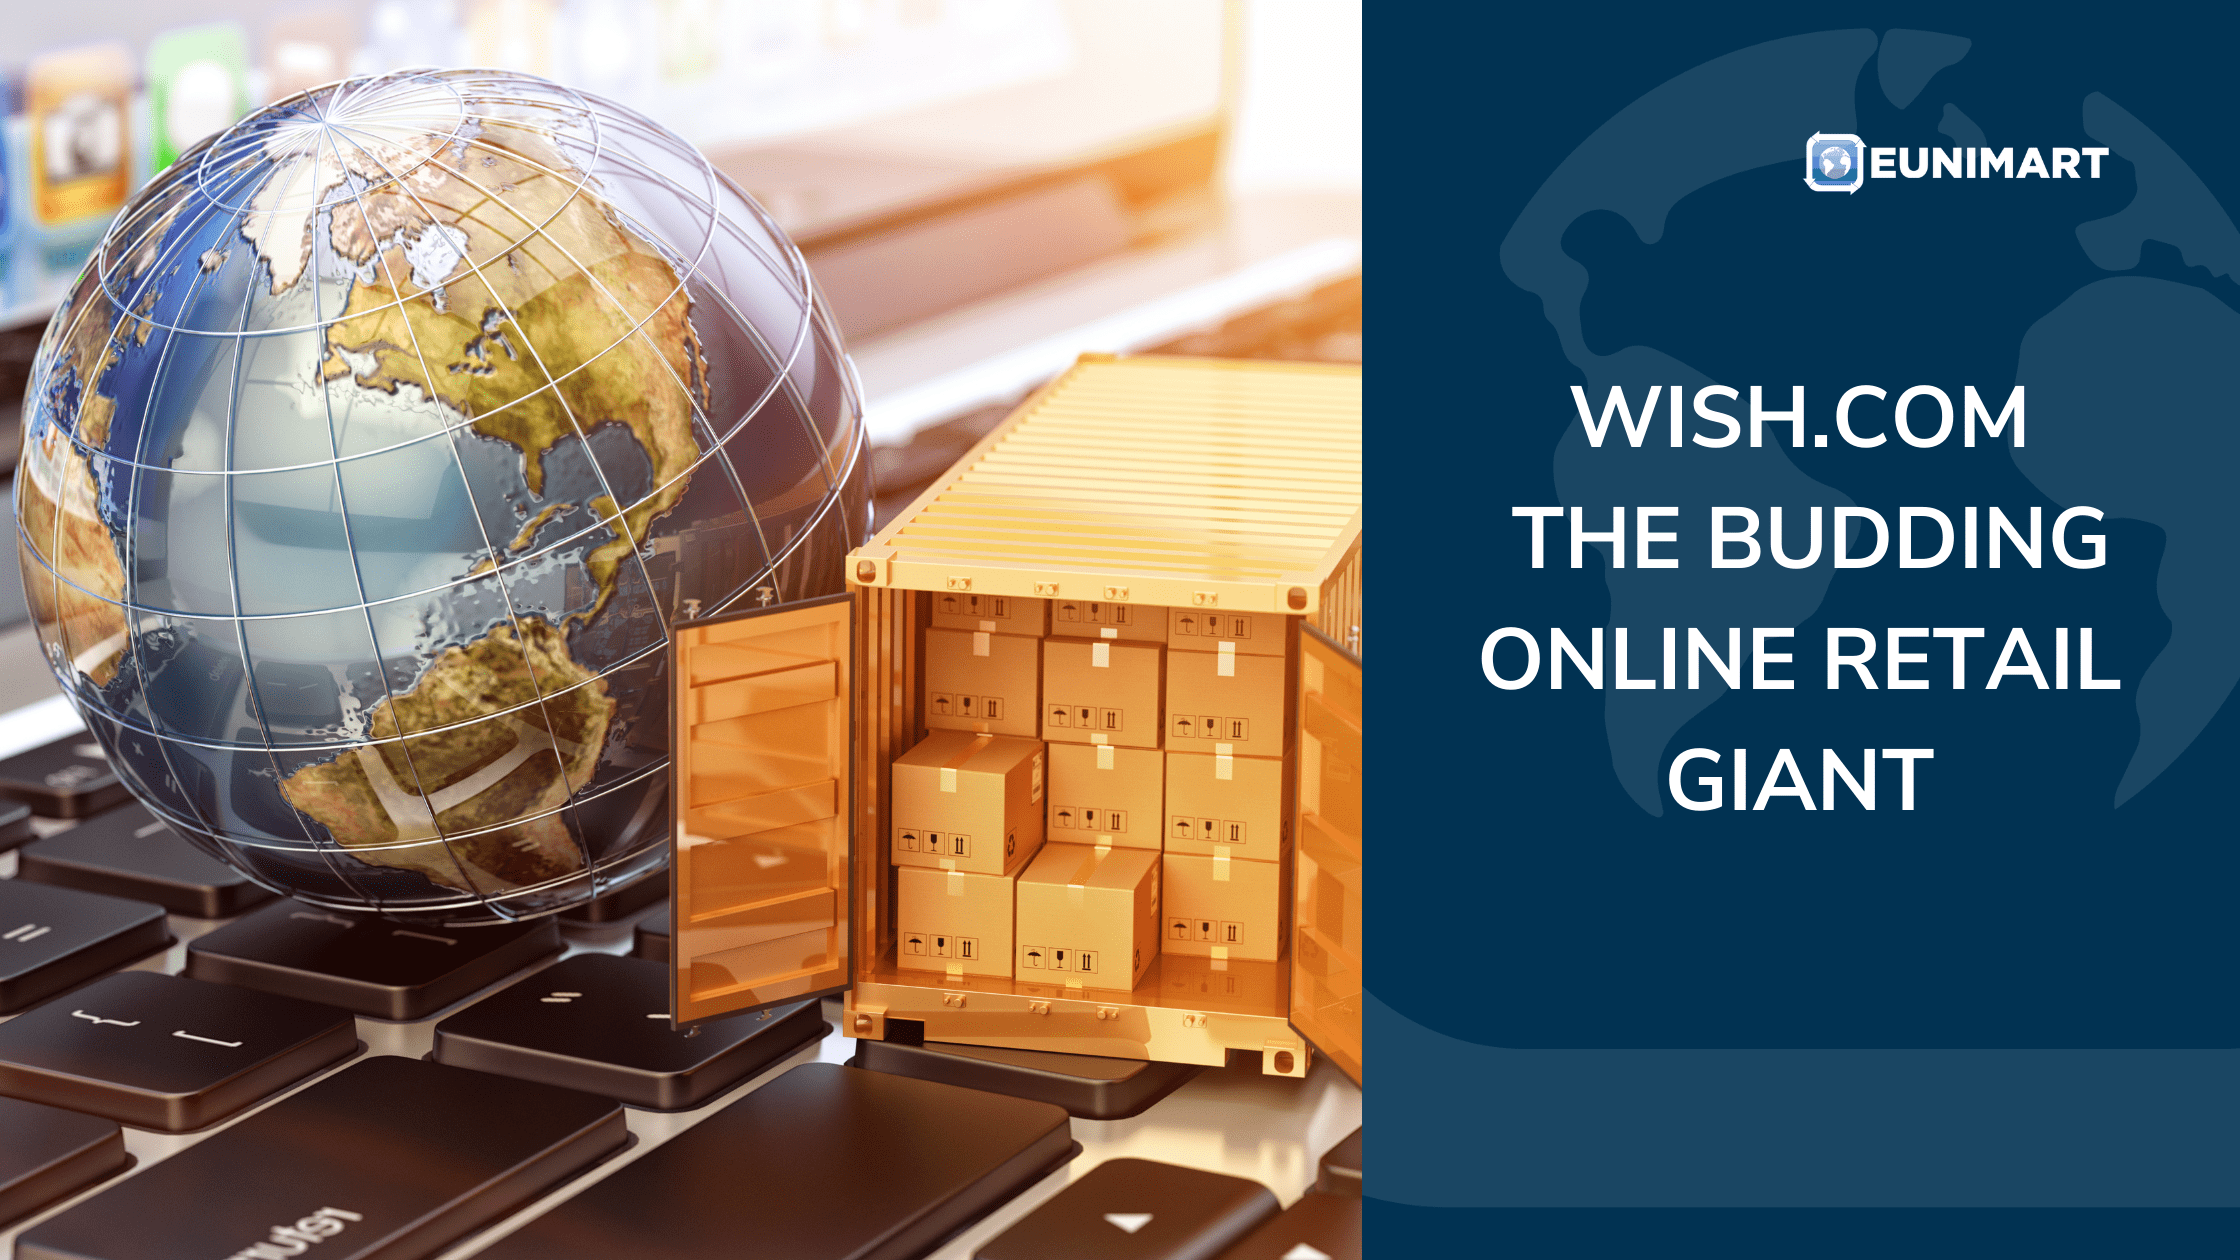 Wish.com- The Budding Online Retail Giant in US